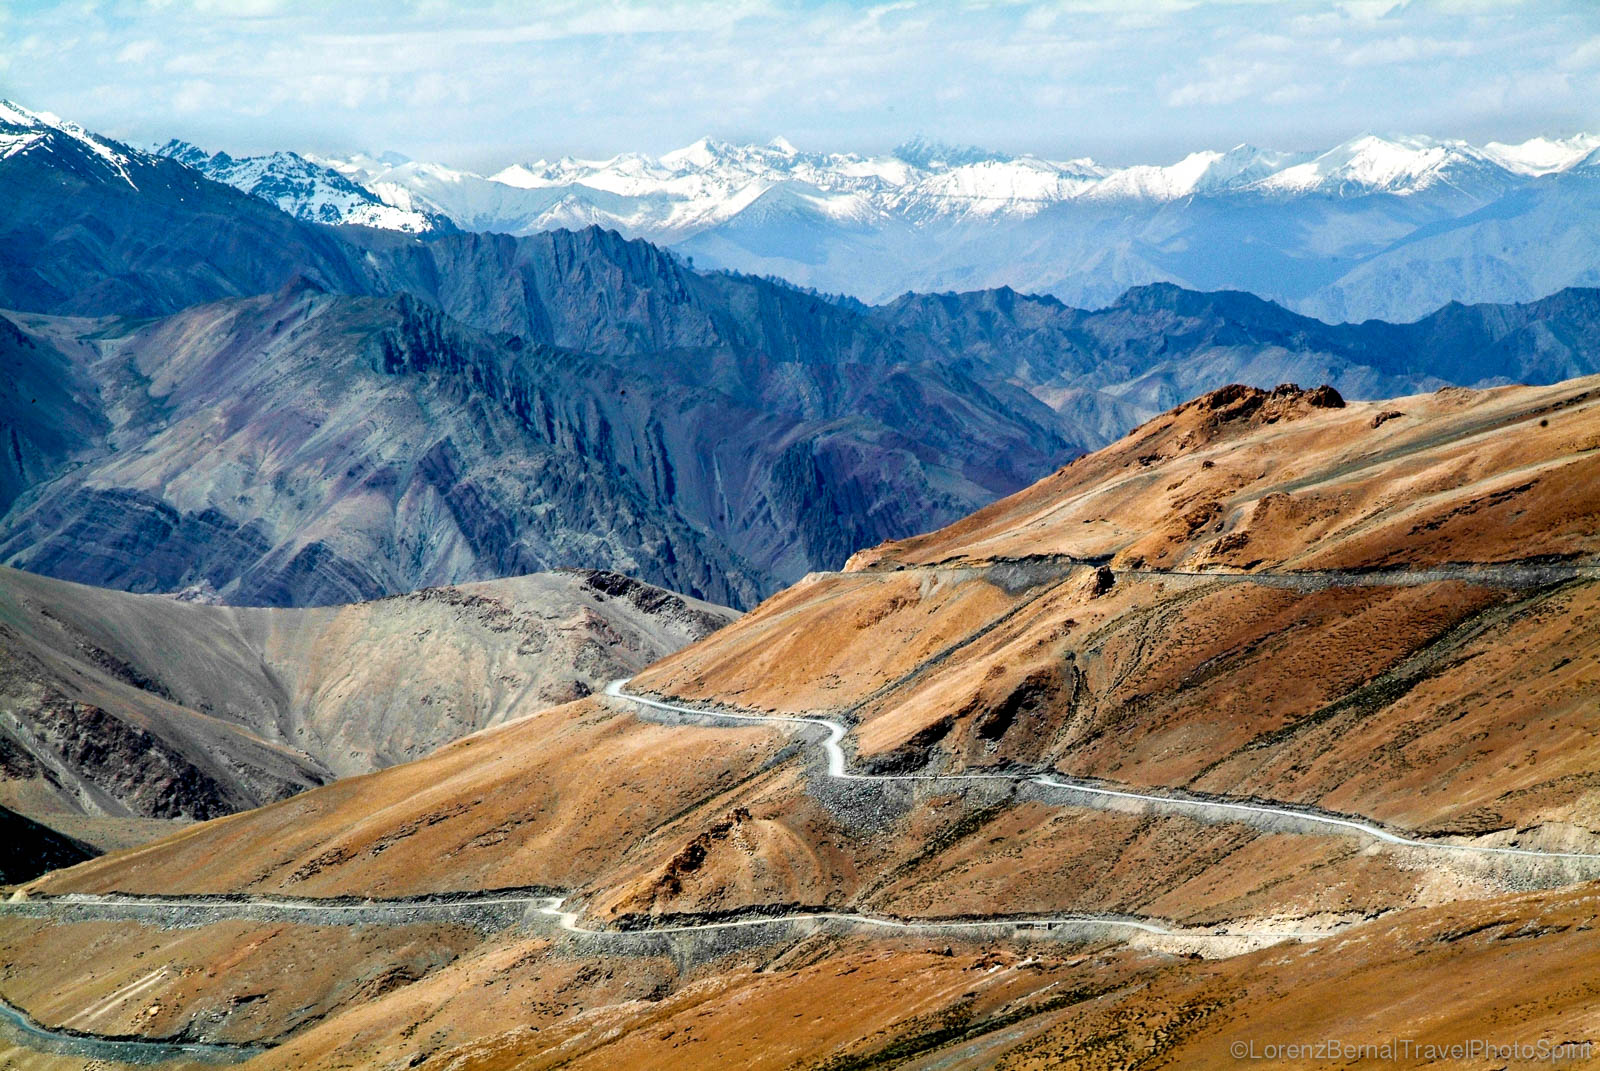 View from Tanglang La in Ladakh on the Leh-Manali highway - A Lorenz Berna Travel Photography of India